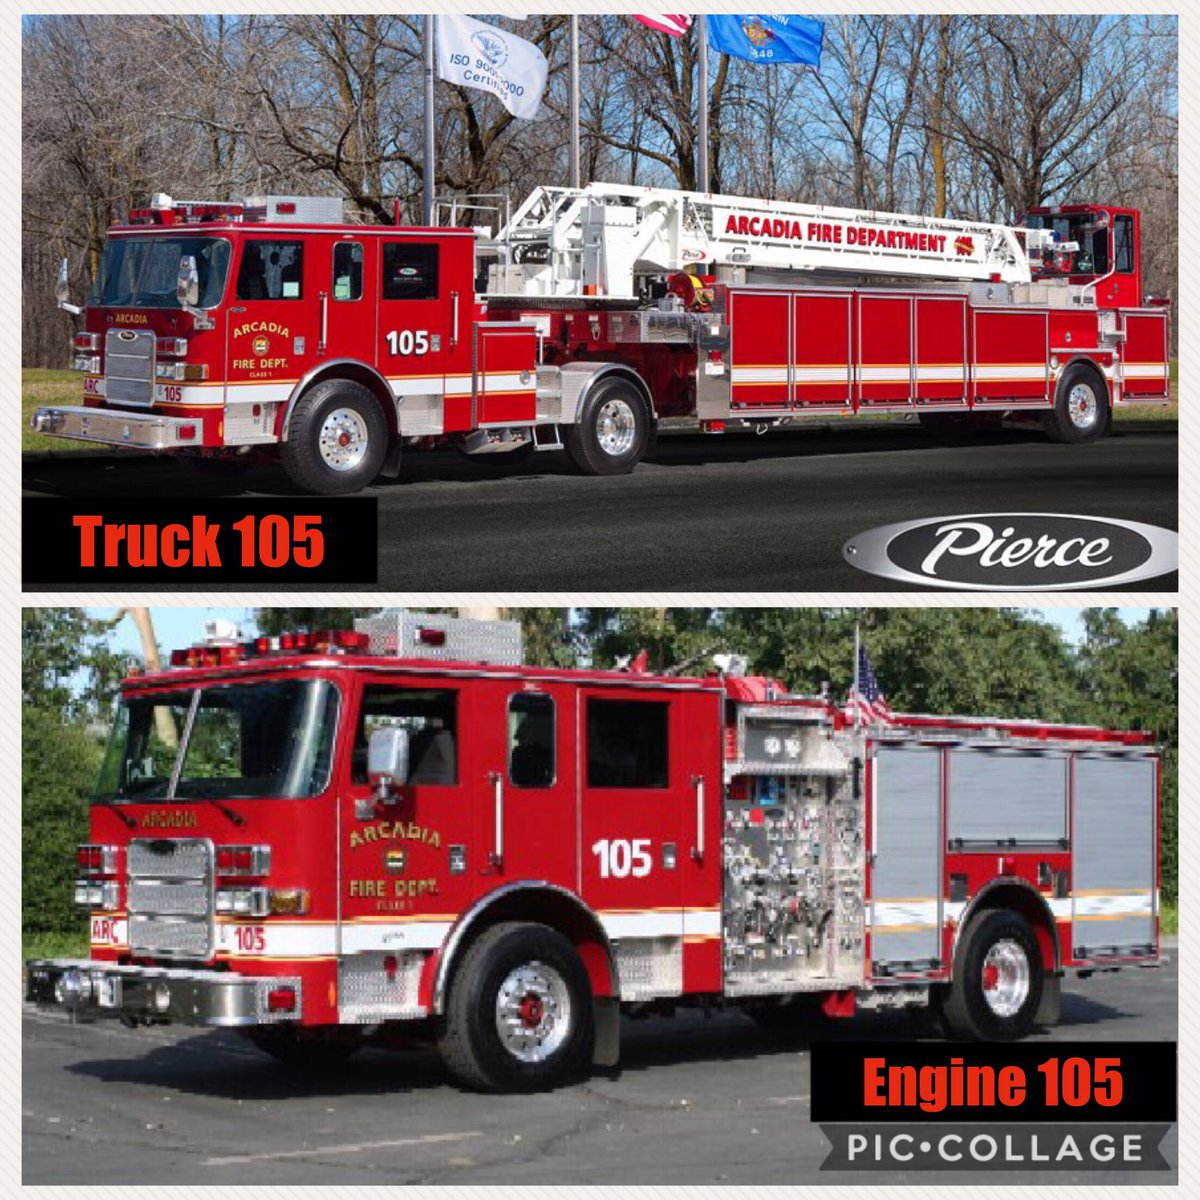 Arcadia Fire Dept On Twitter Funfactfriday Is There A Difference Between Engine Truck Yes Usually Engines Have Pump Trucks An